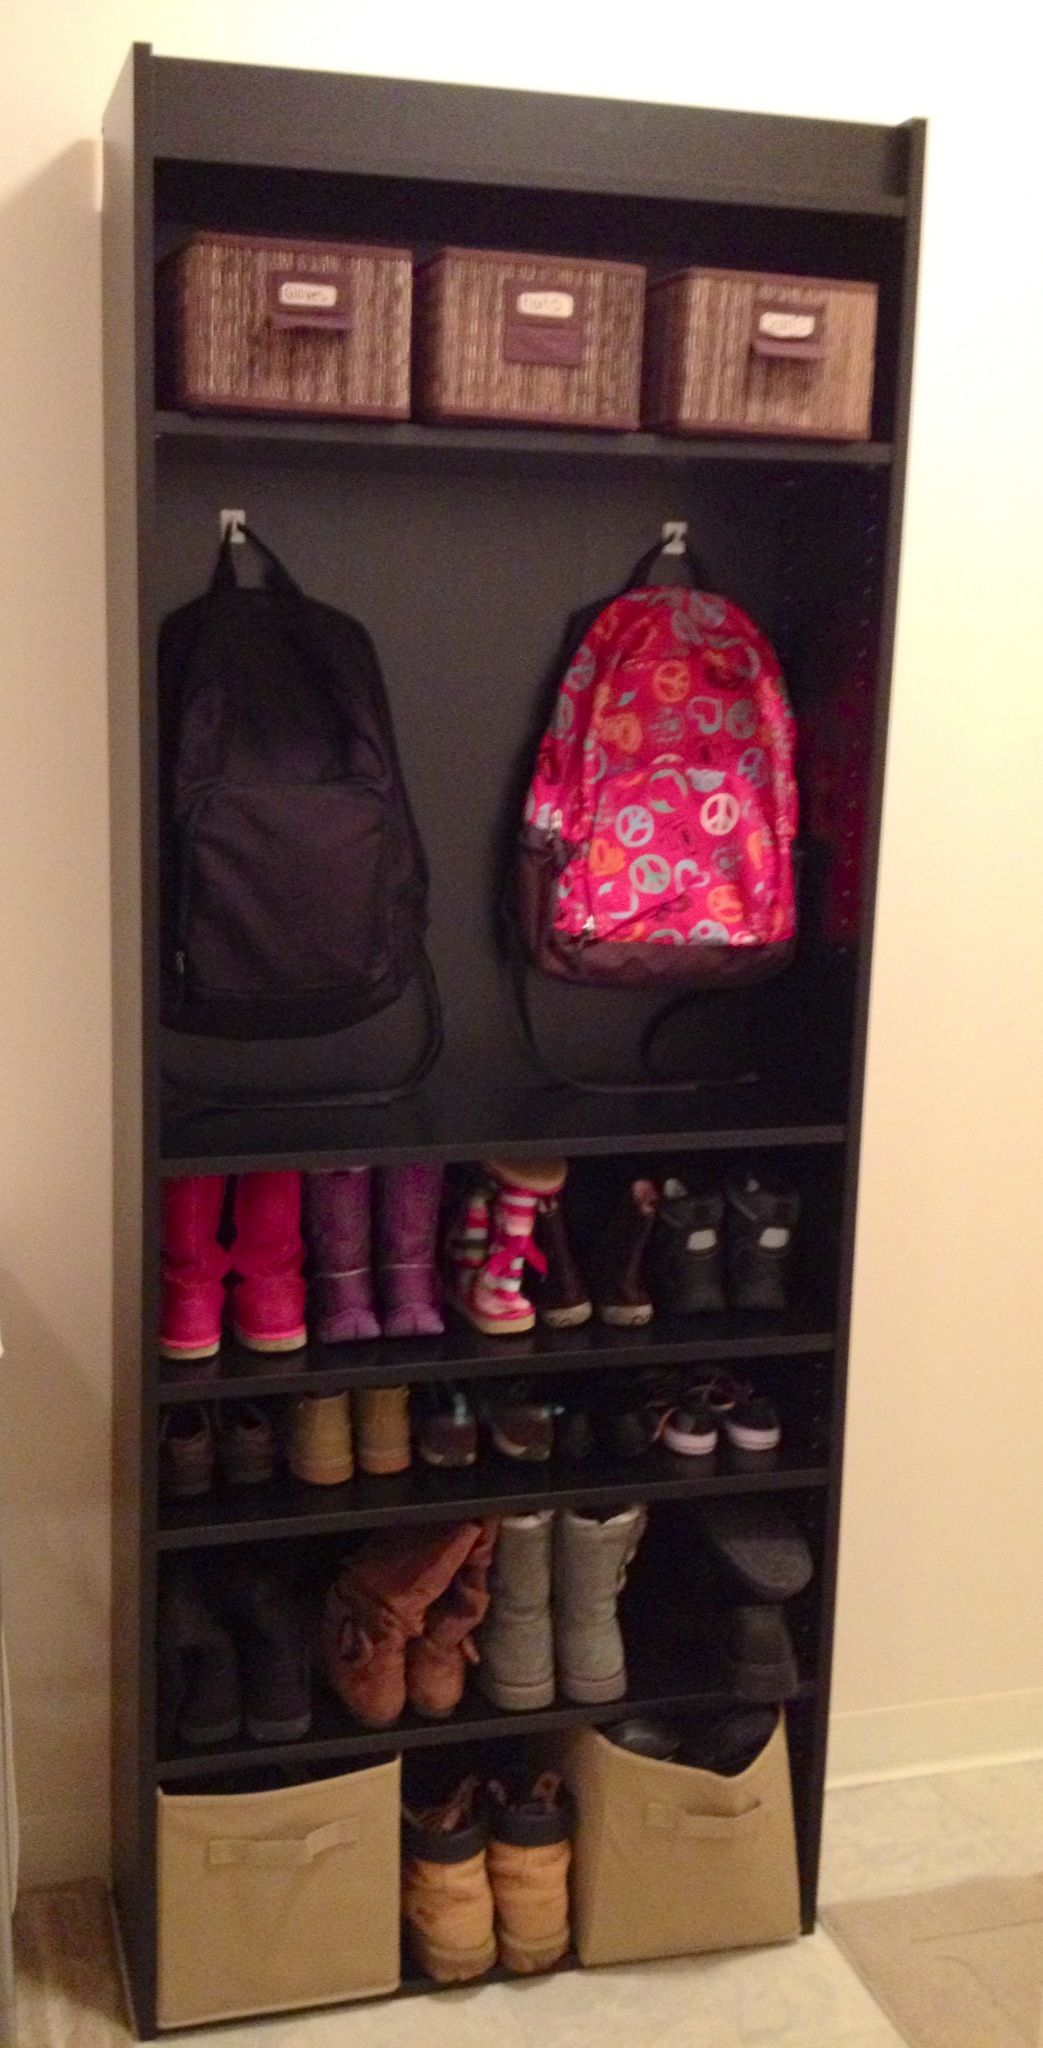 bookcase turned into storage something like this but with